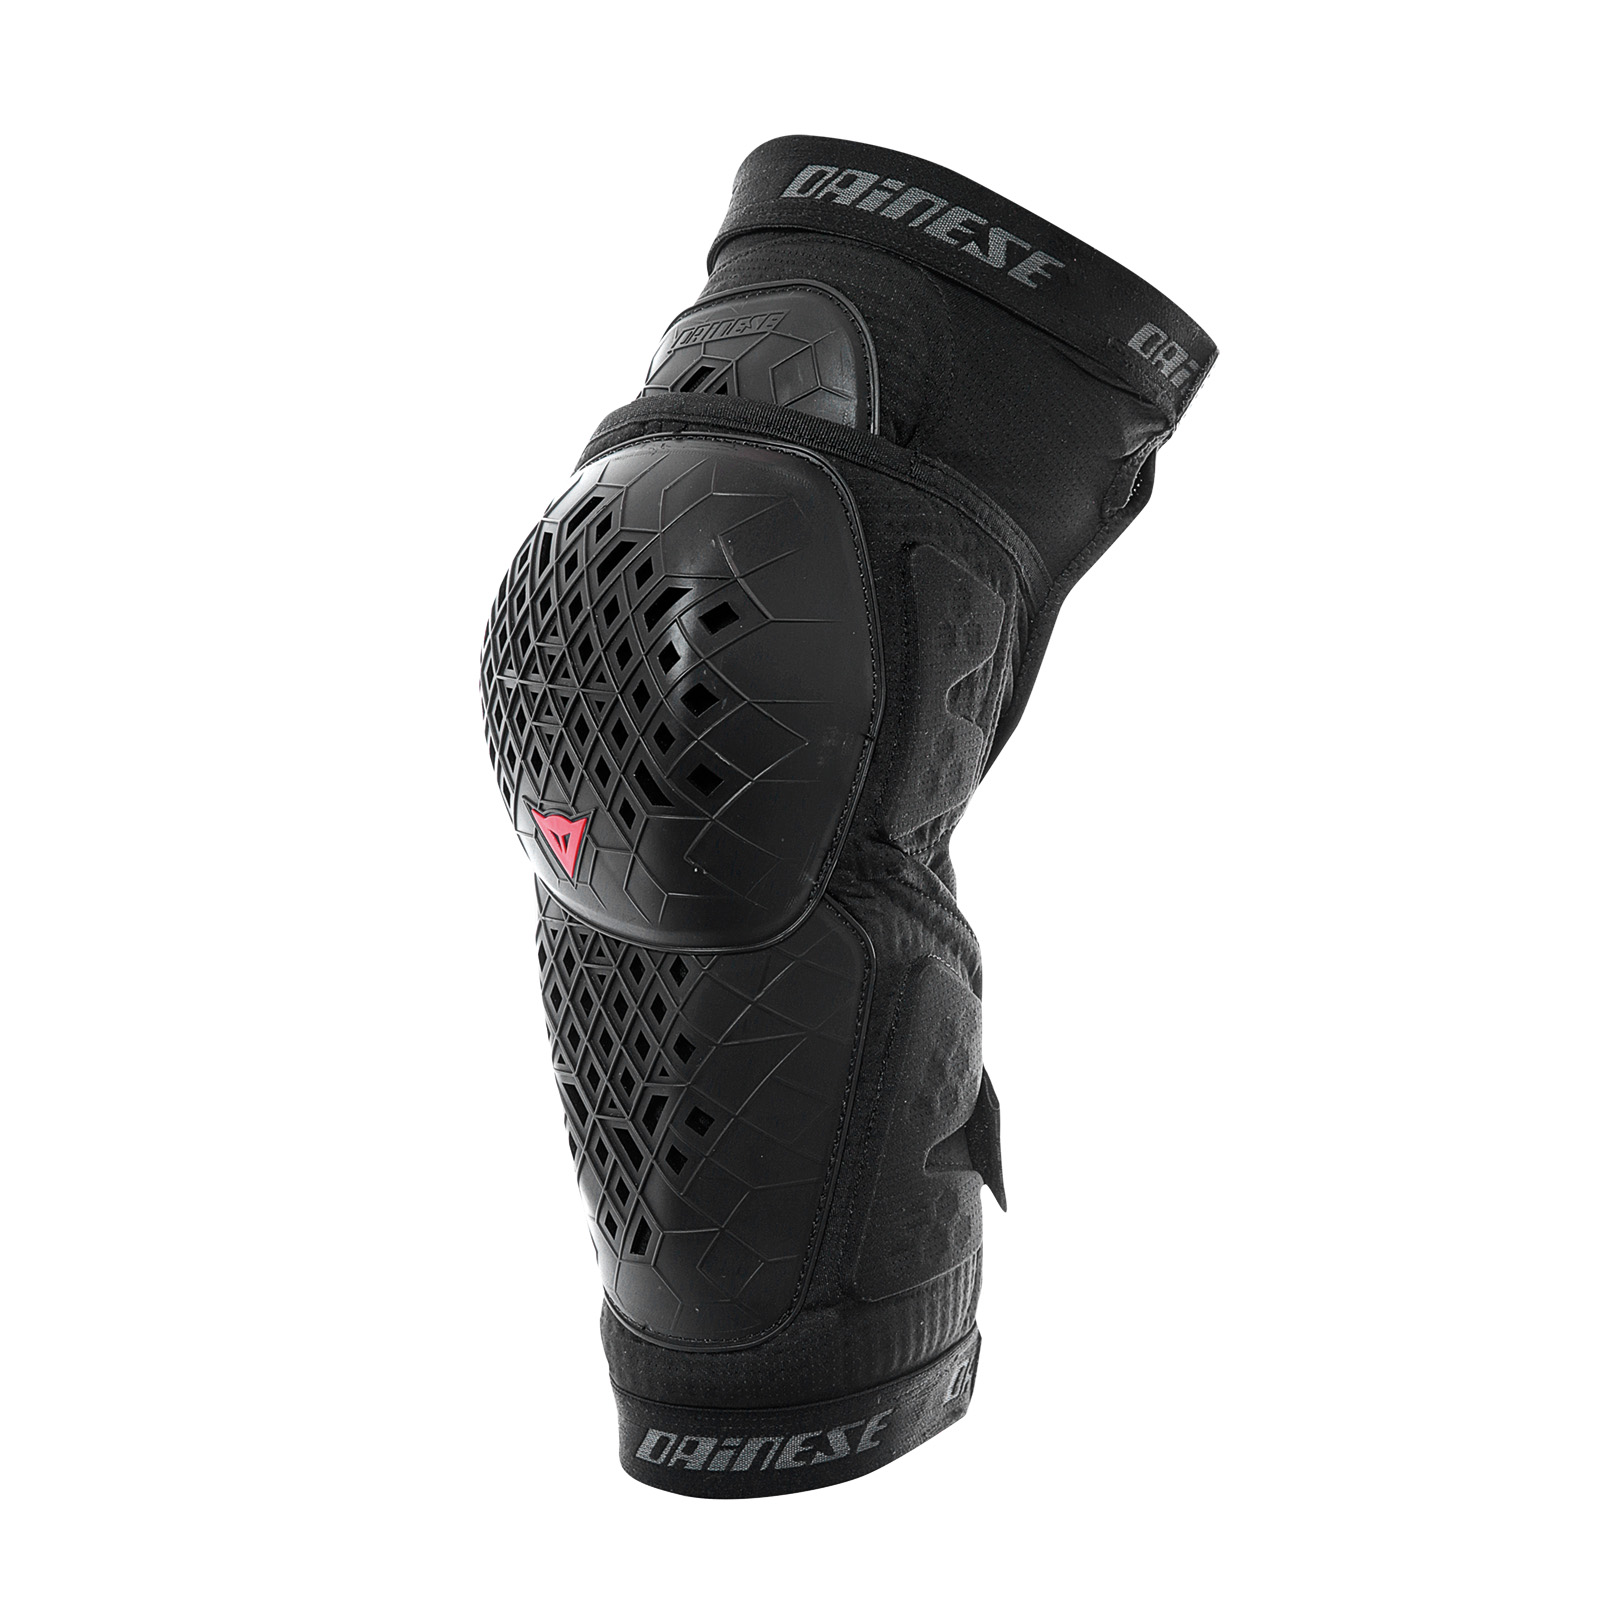 protection genoux dainese armoform knee guards dainese d store stylmachine accessoires et. Black Bedroom Furniture Sets. Home Design Ideas